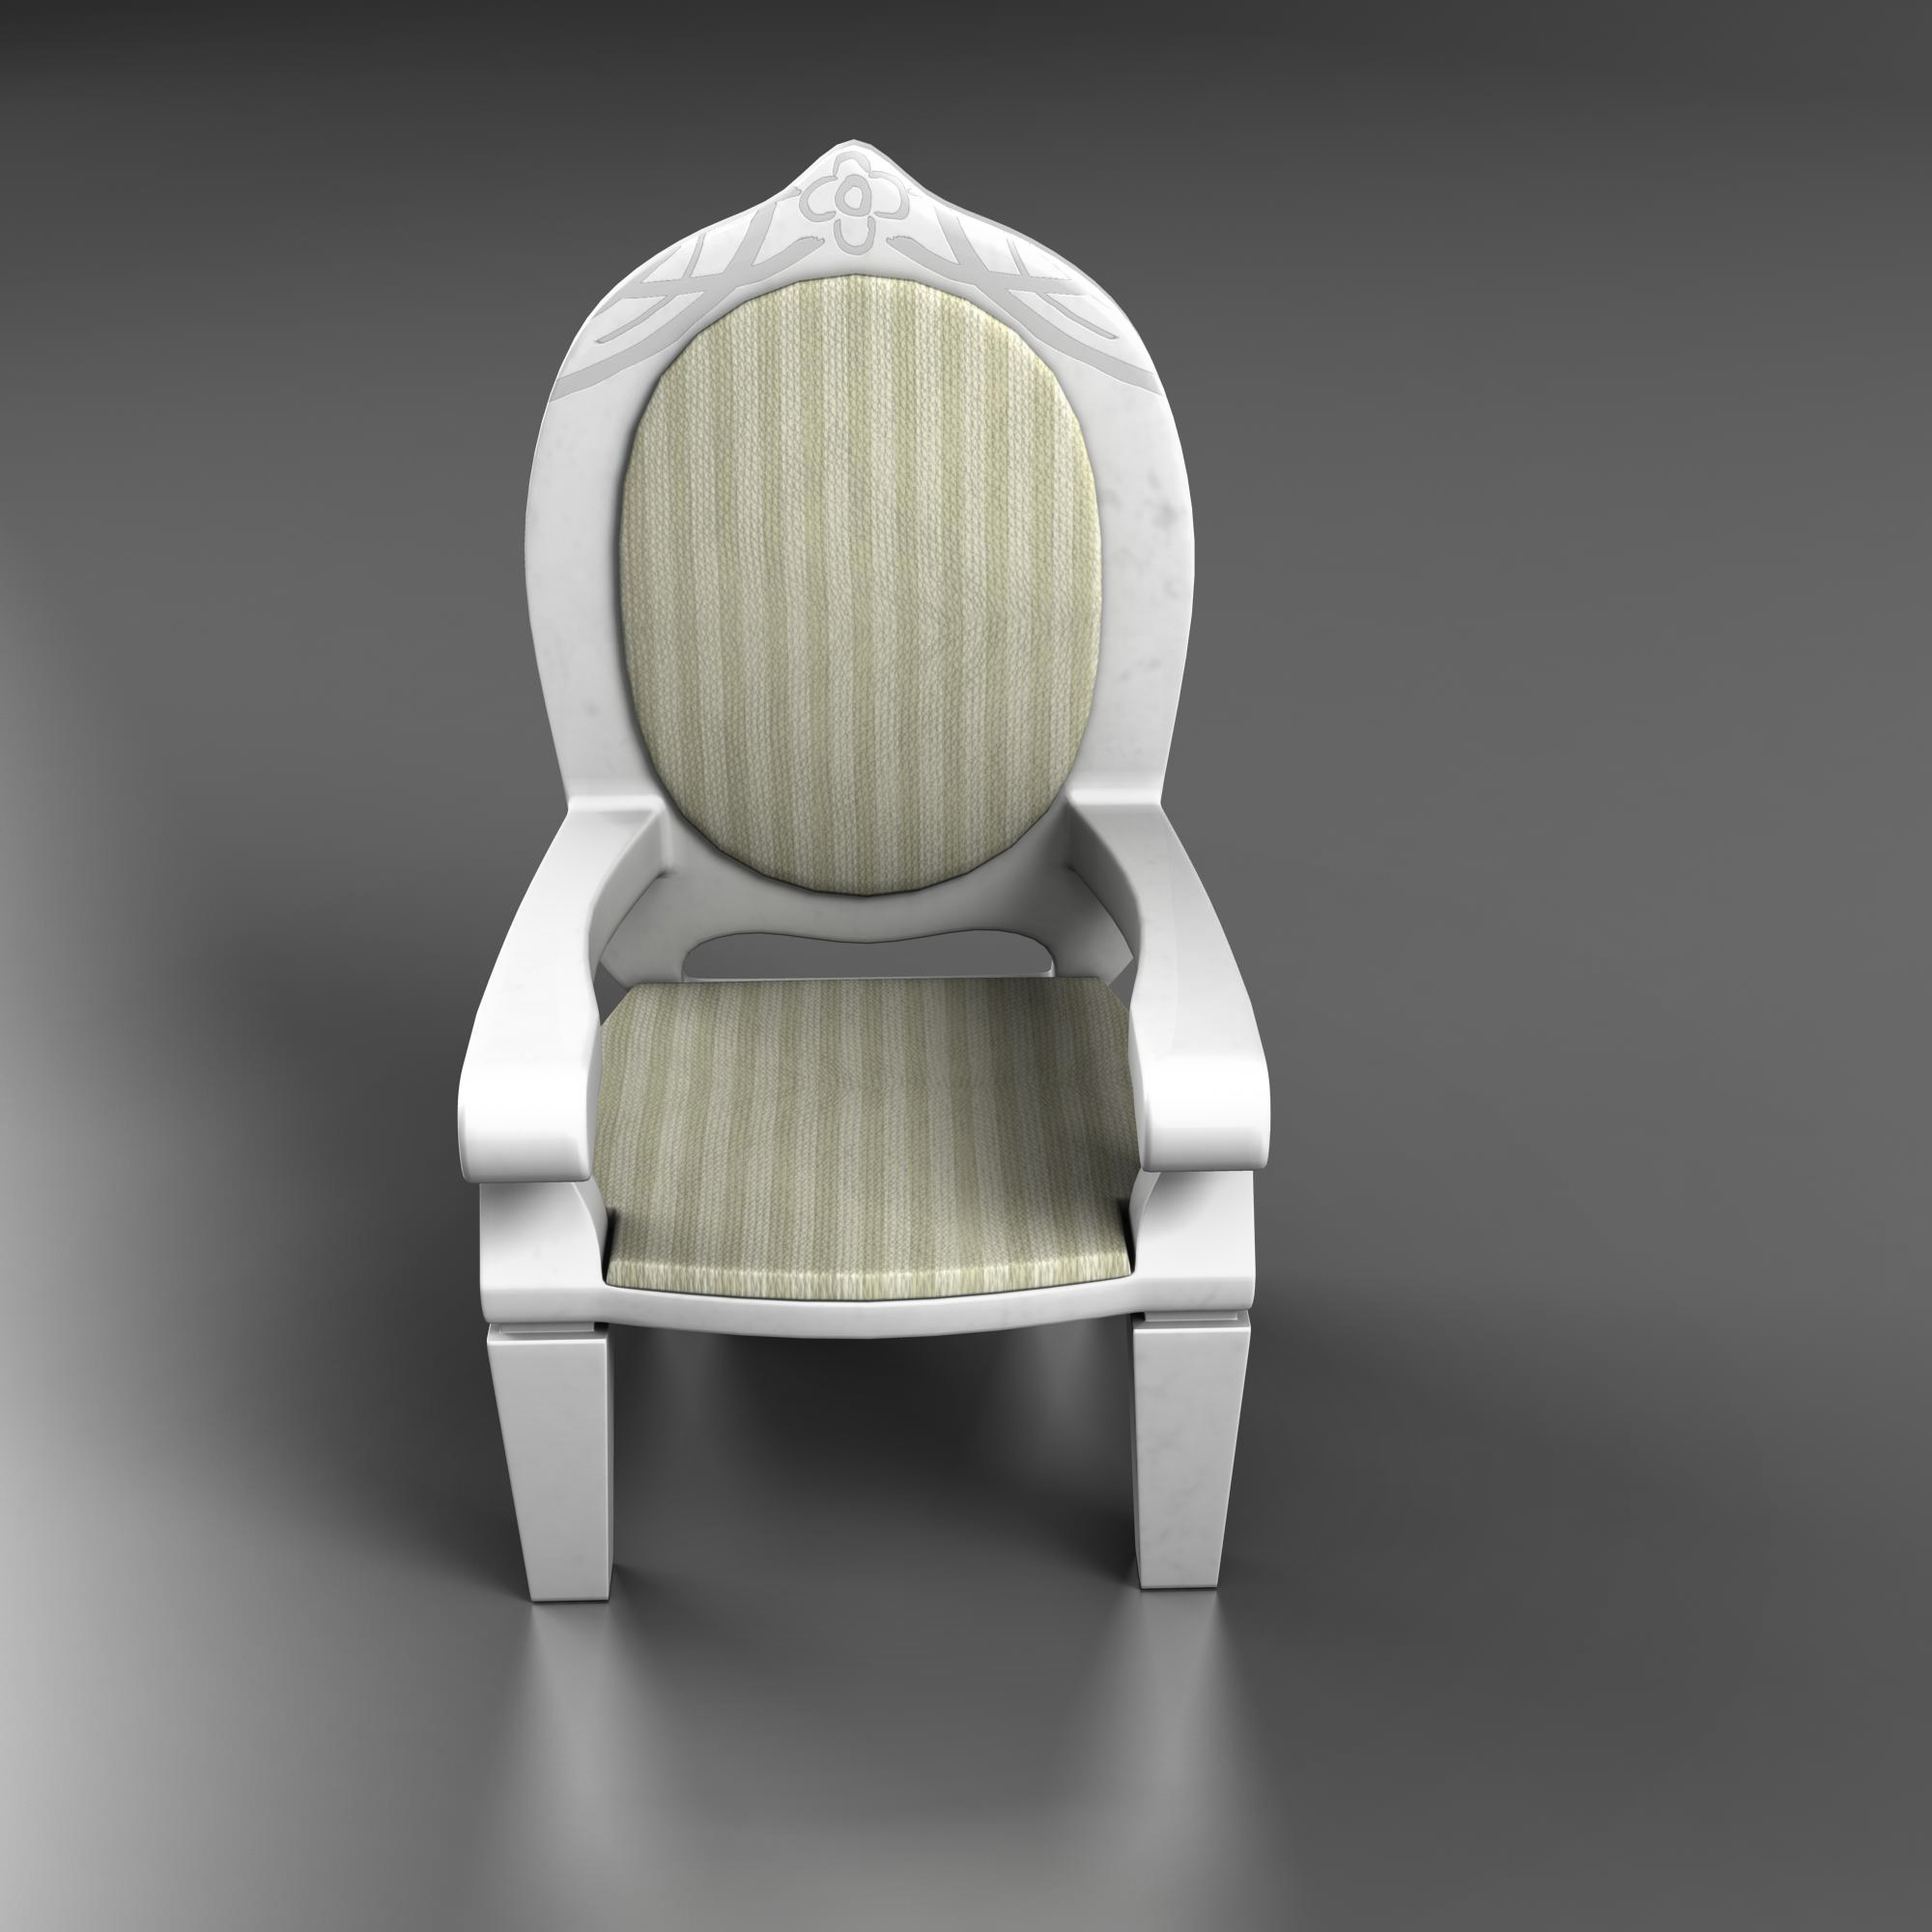 dolls pushchair 3d model 3ds max fbx ma mb obj 157397